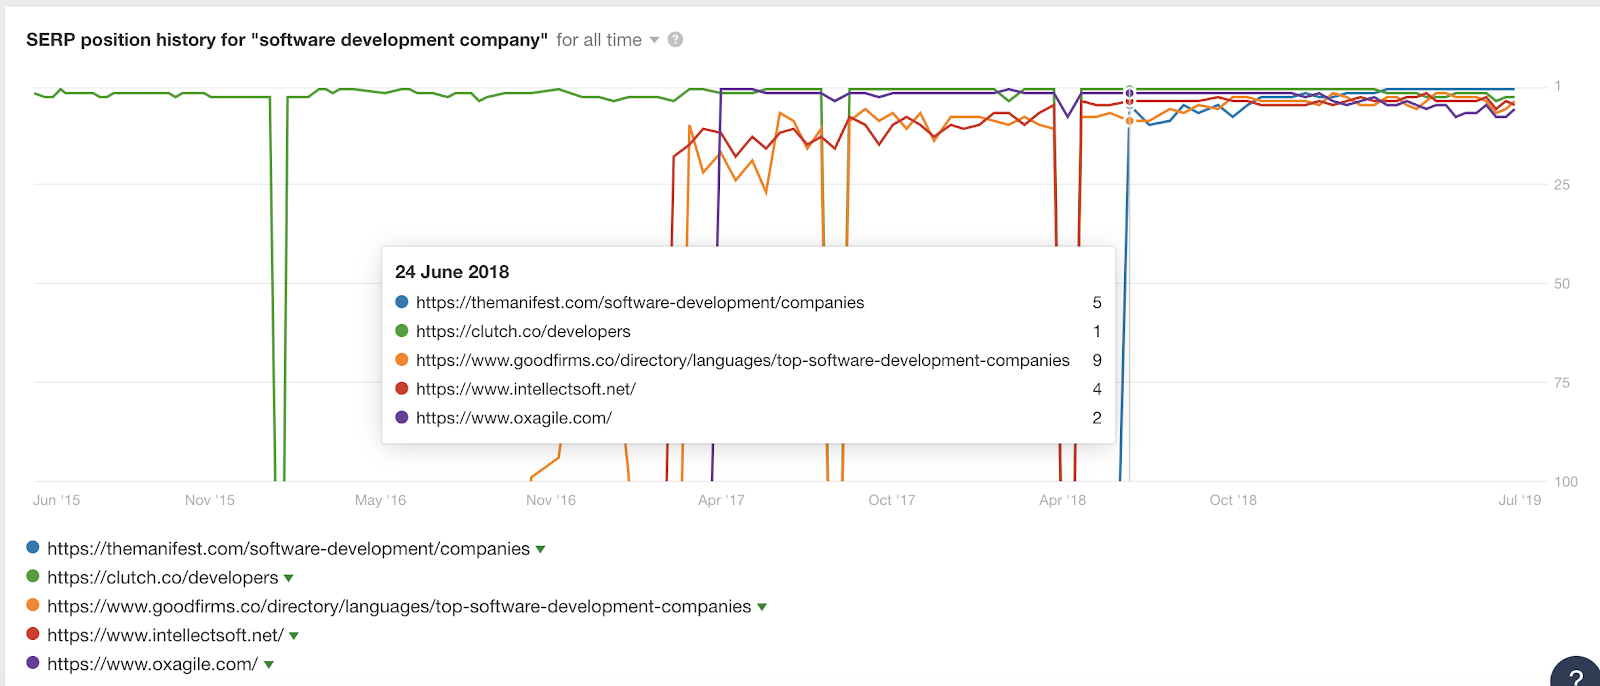 SERP position history for software development company